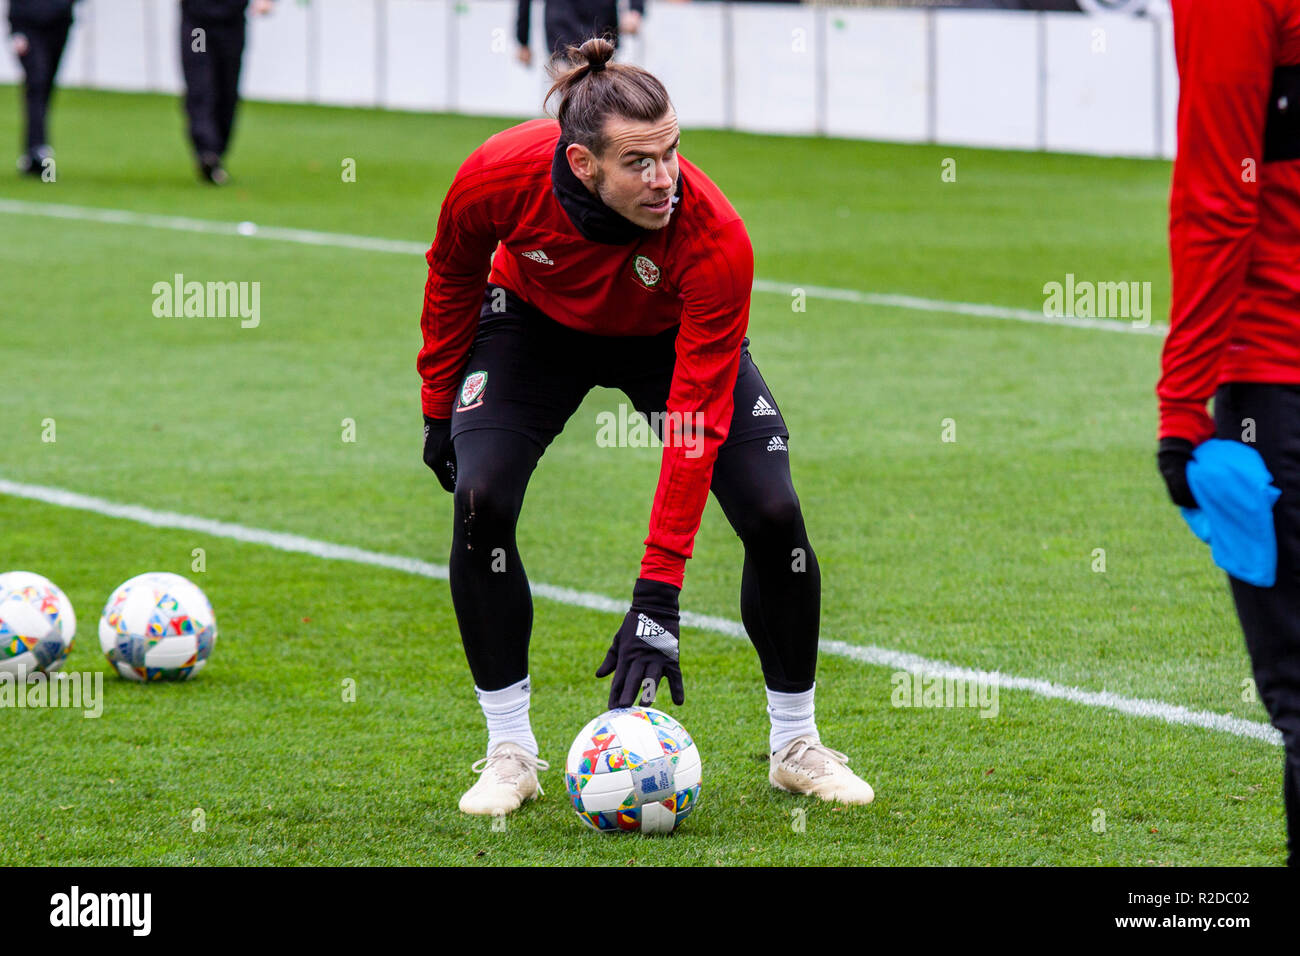 Cardiff, Wales. 15th November, 2018. Wales Gareth Bale trains ahead of their upcoming friendly against Albania. Lewis Mitchell/YCPD. Credit: Lewis Mitchell/Alamy Live News Stock Photo